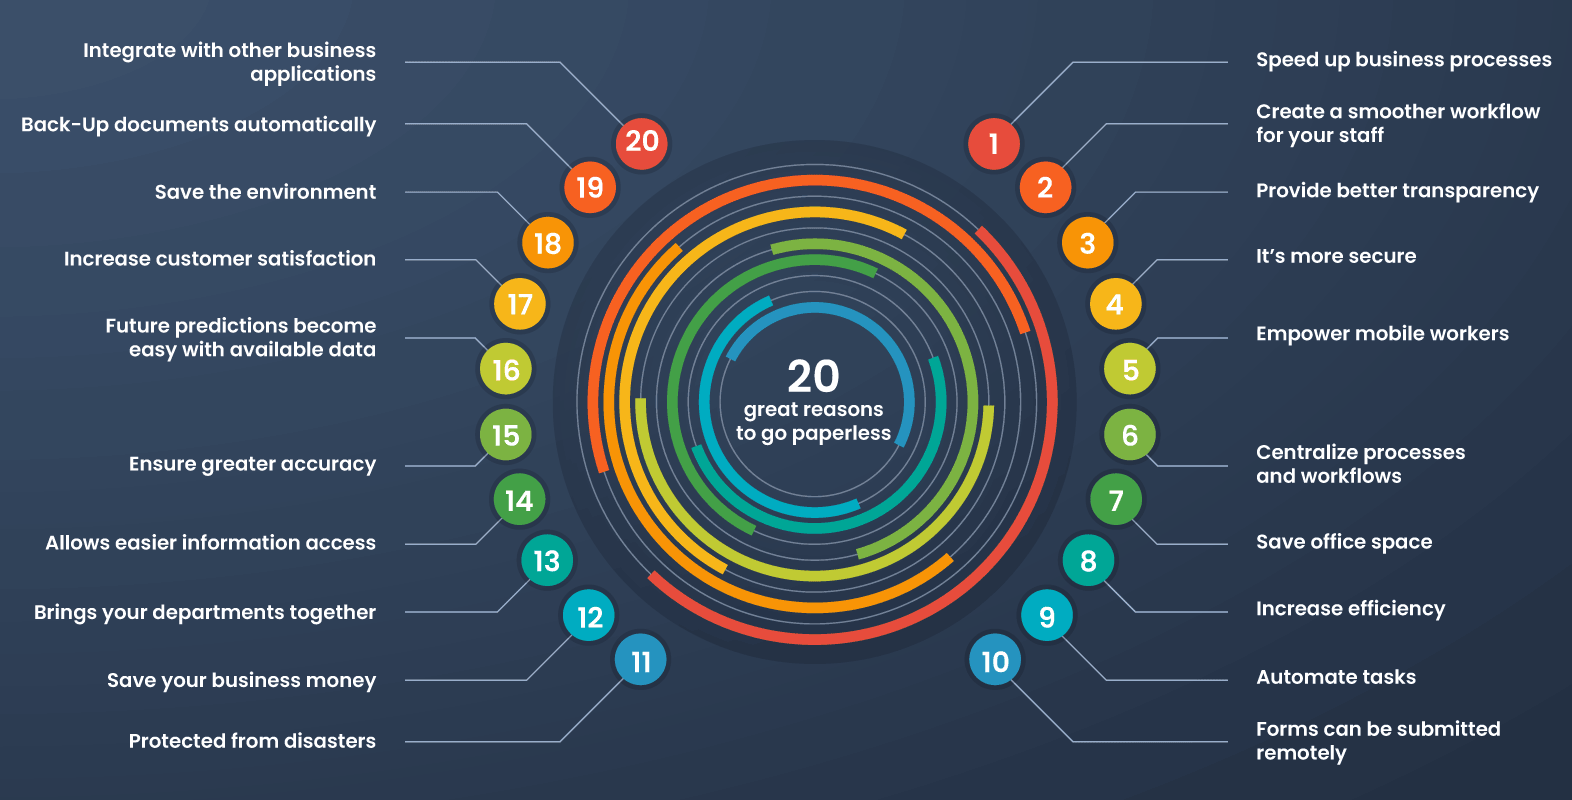 20 great reasons to go paperless